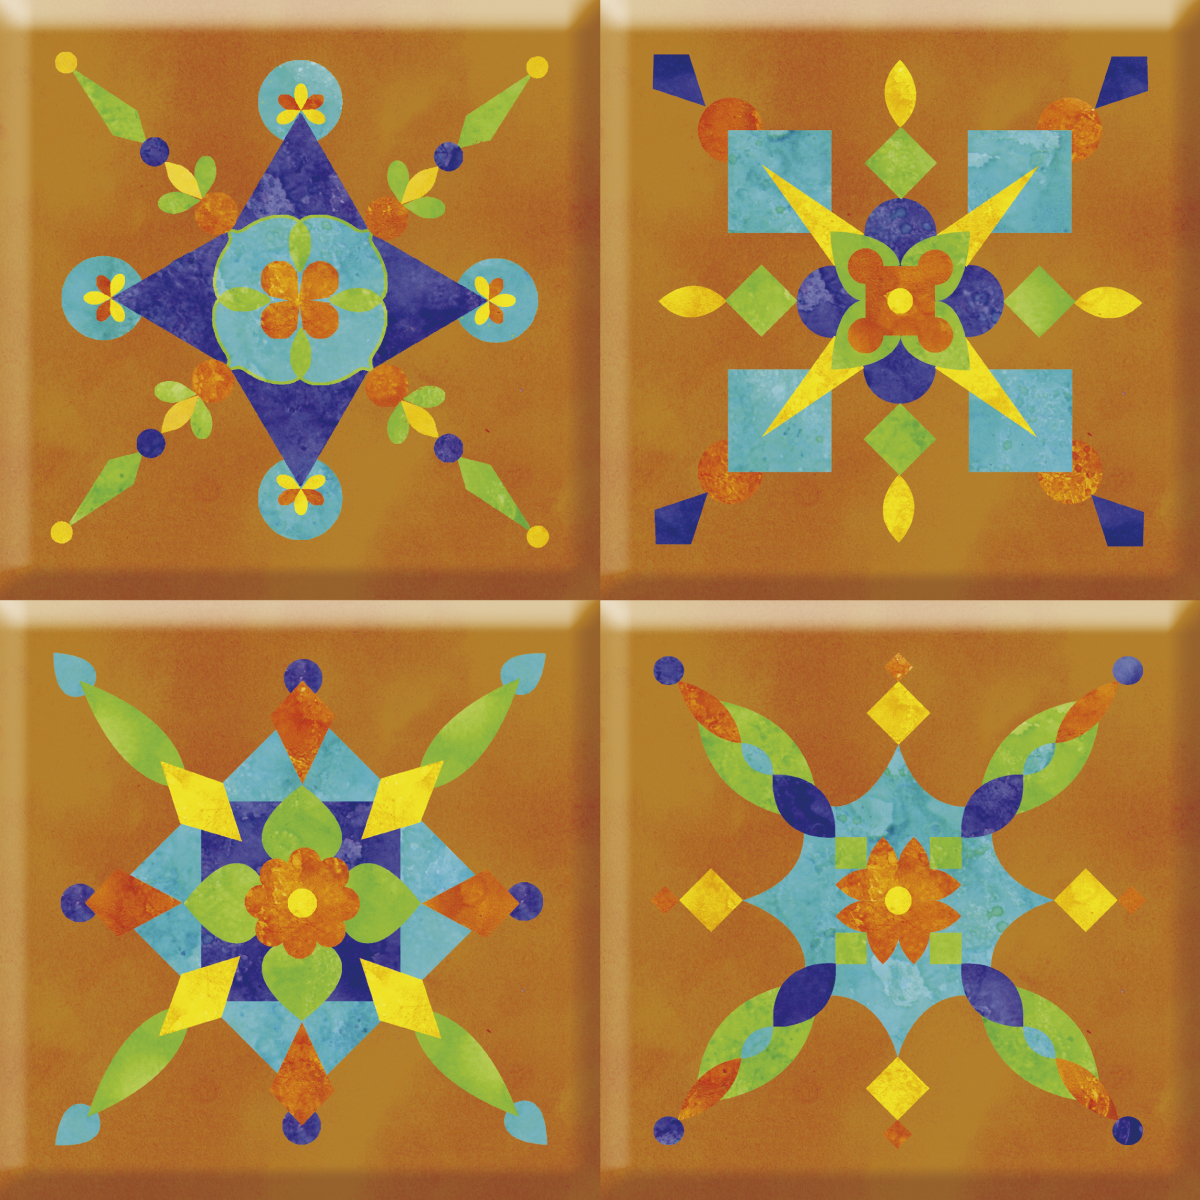 IdeaStix Fiesta TileStix - Original Premium 4-Piece Peel and Stick Tile Décor